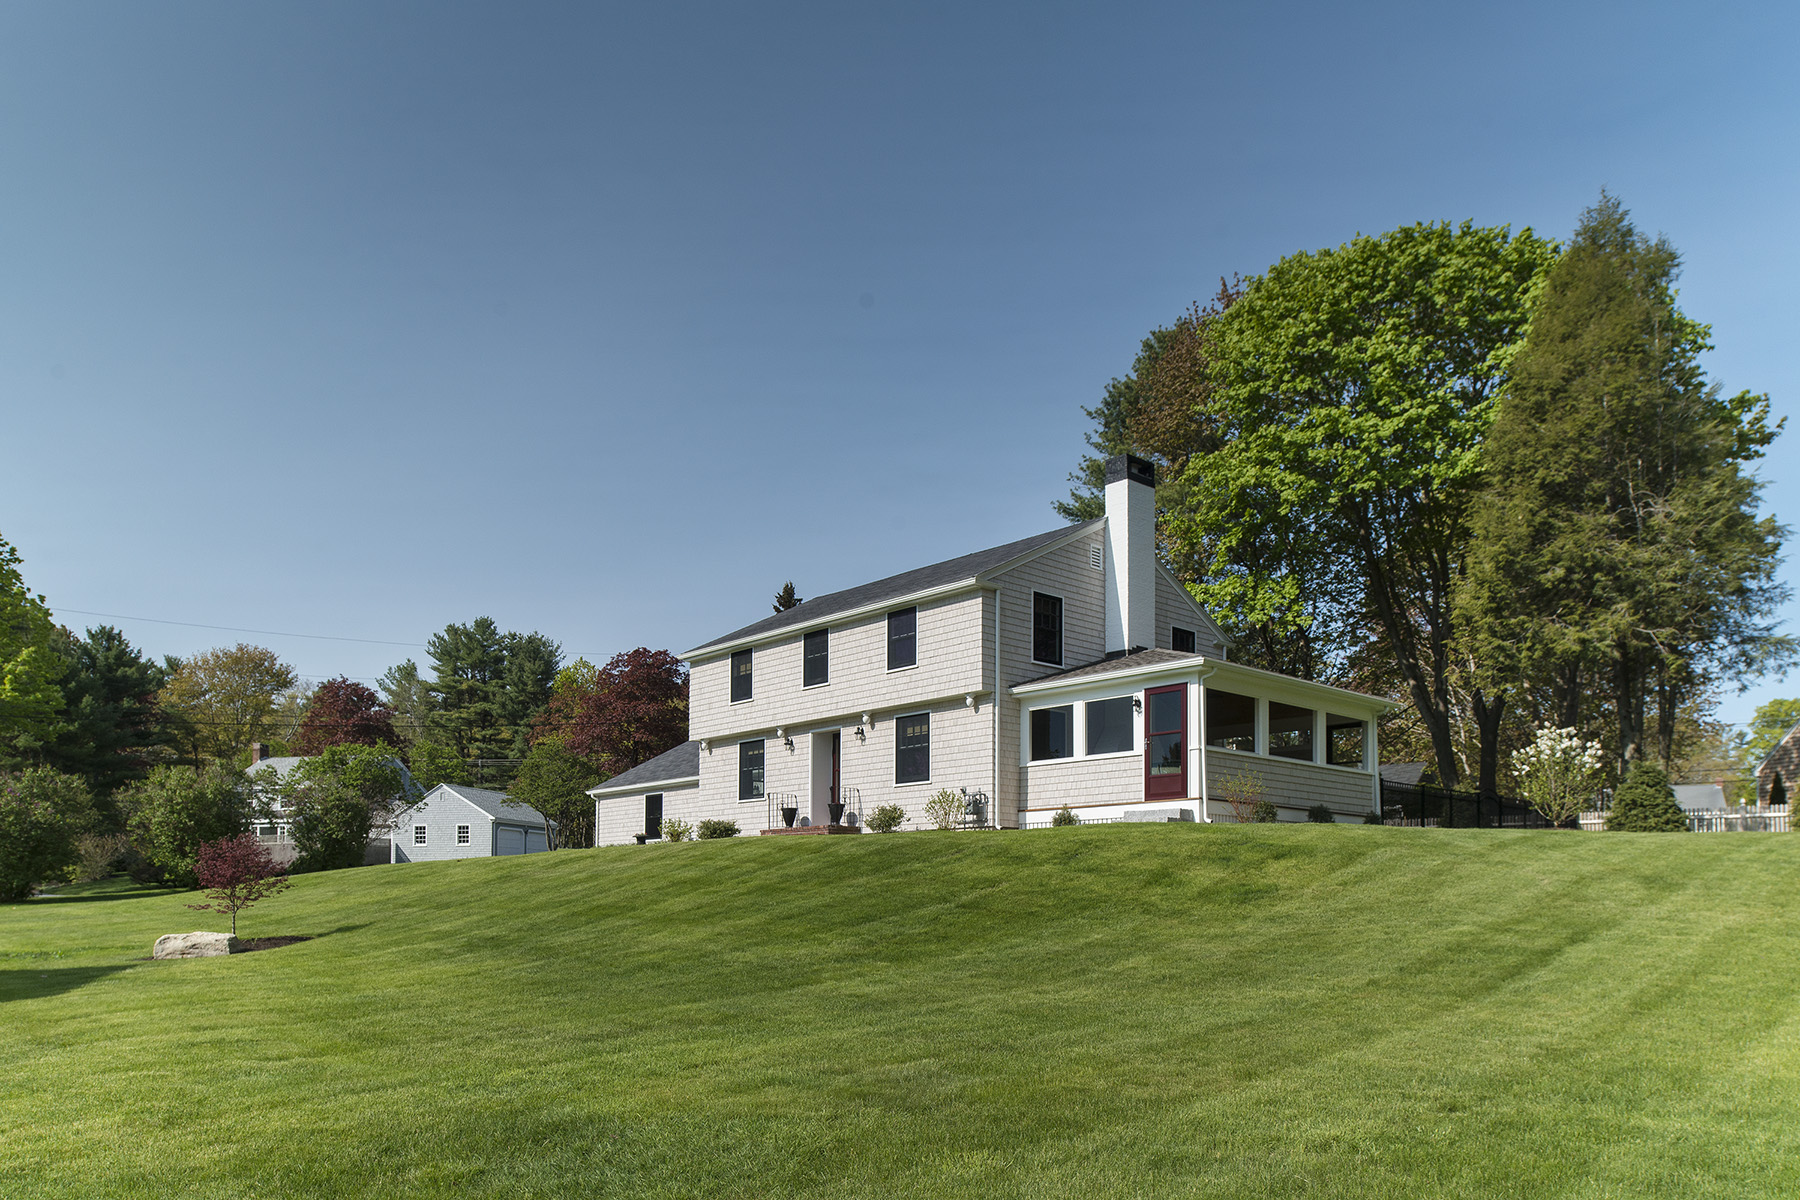 Single Family Home for Sale at 4 Sea Cove Road Cumberland, Maine, 04110 United States